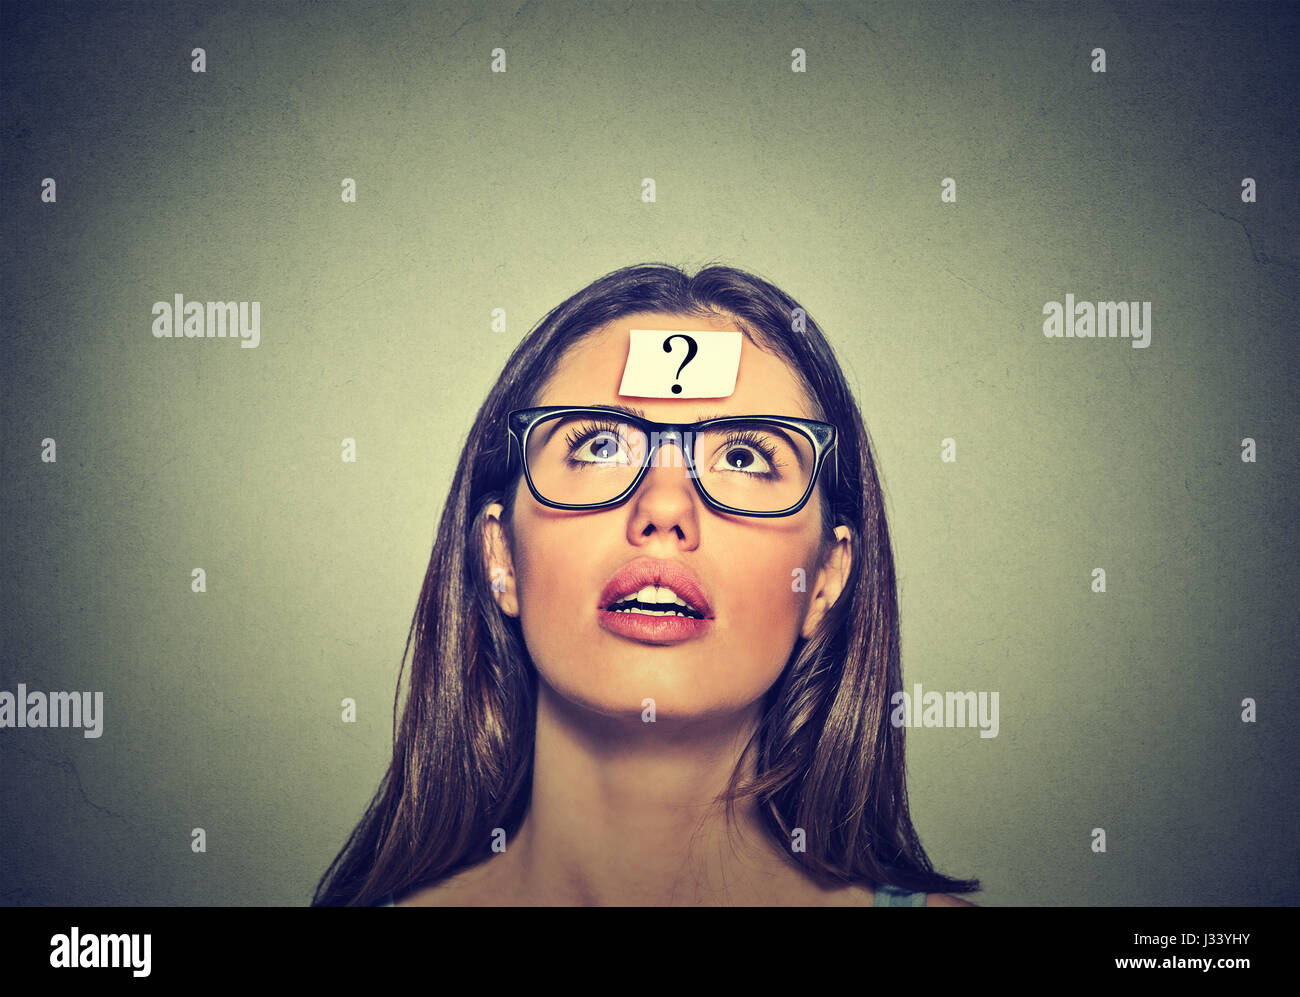 Thoughtful woman looking up - Stock Image